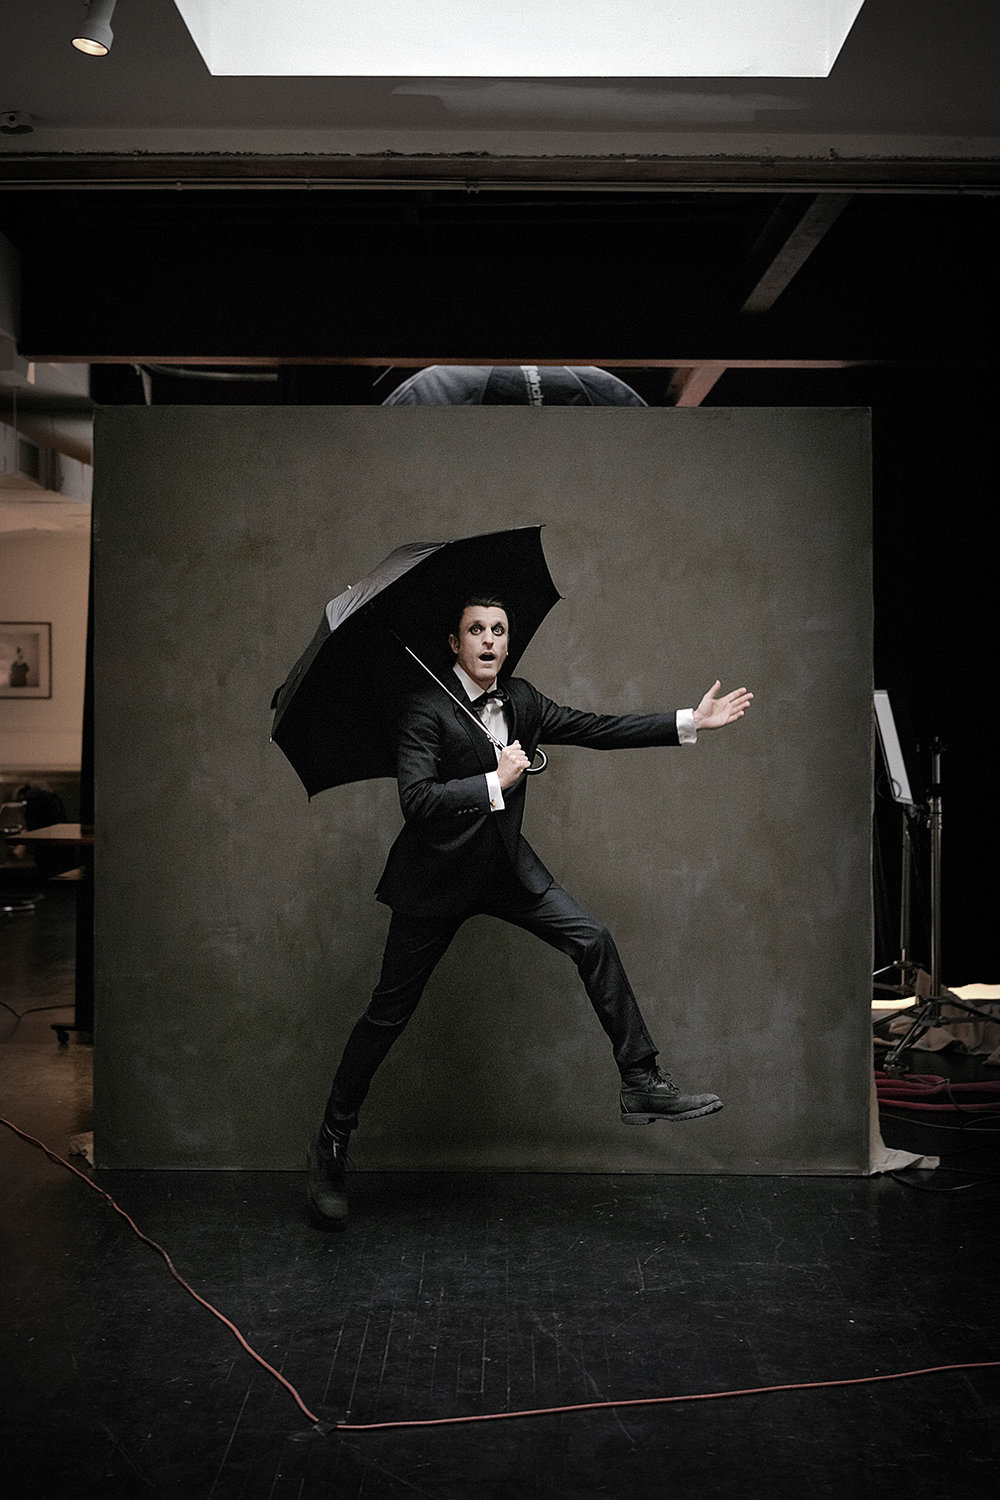 We are very proud to contribute the Tuxedo outfit for this amazing shot....